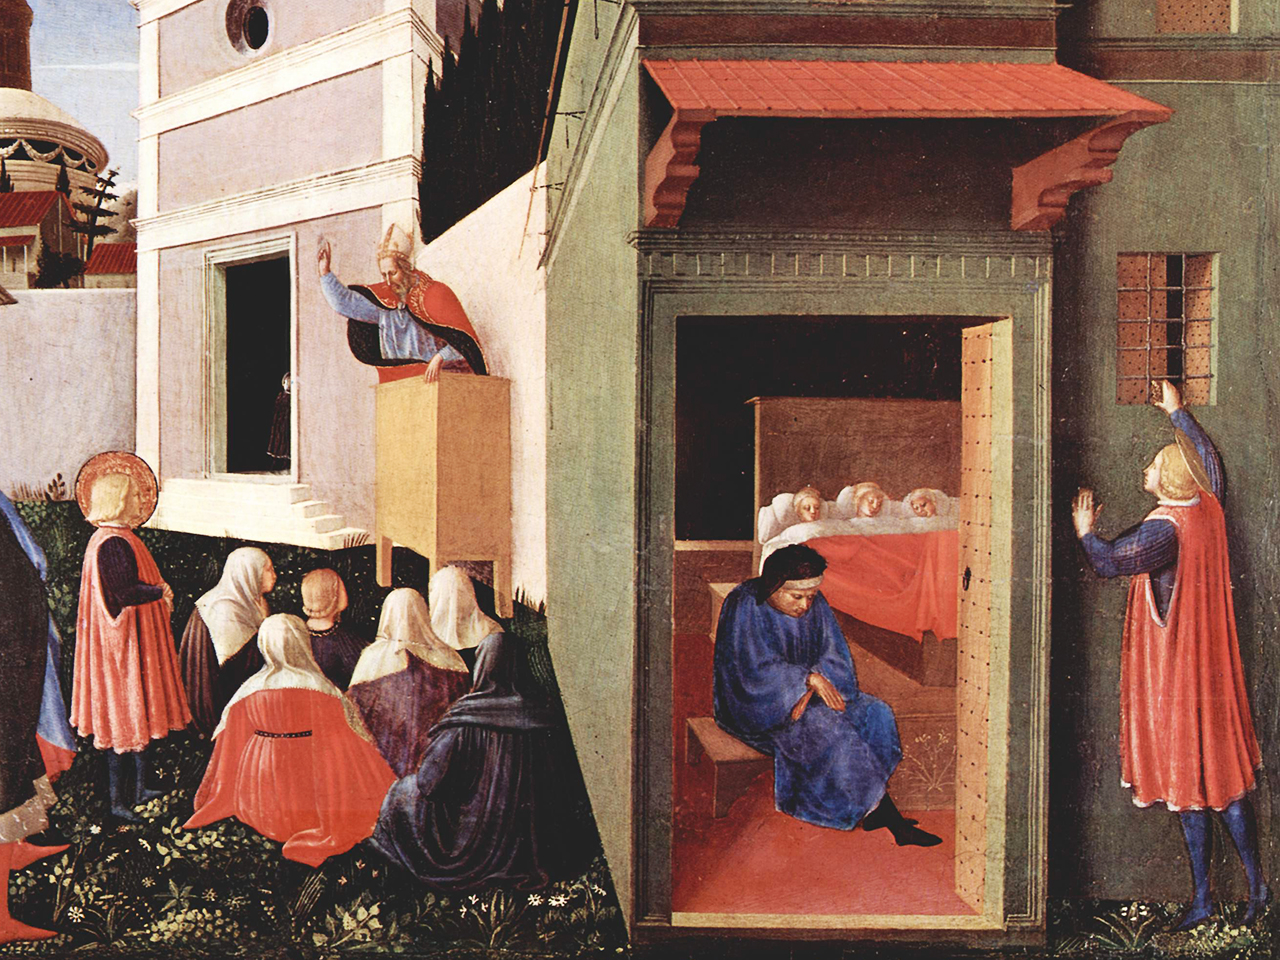 1437 painting by Fra Angelico